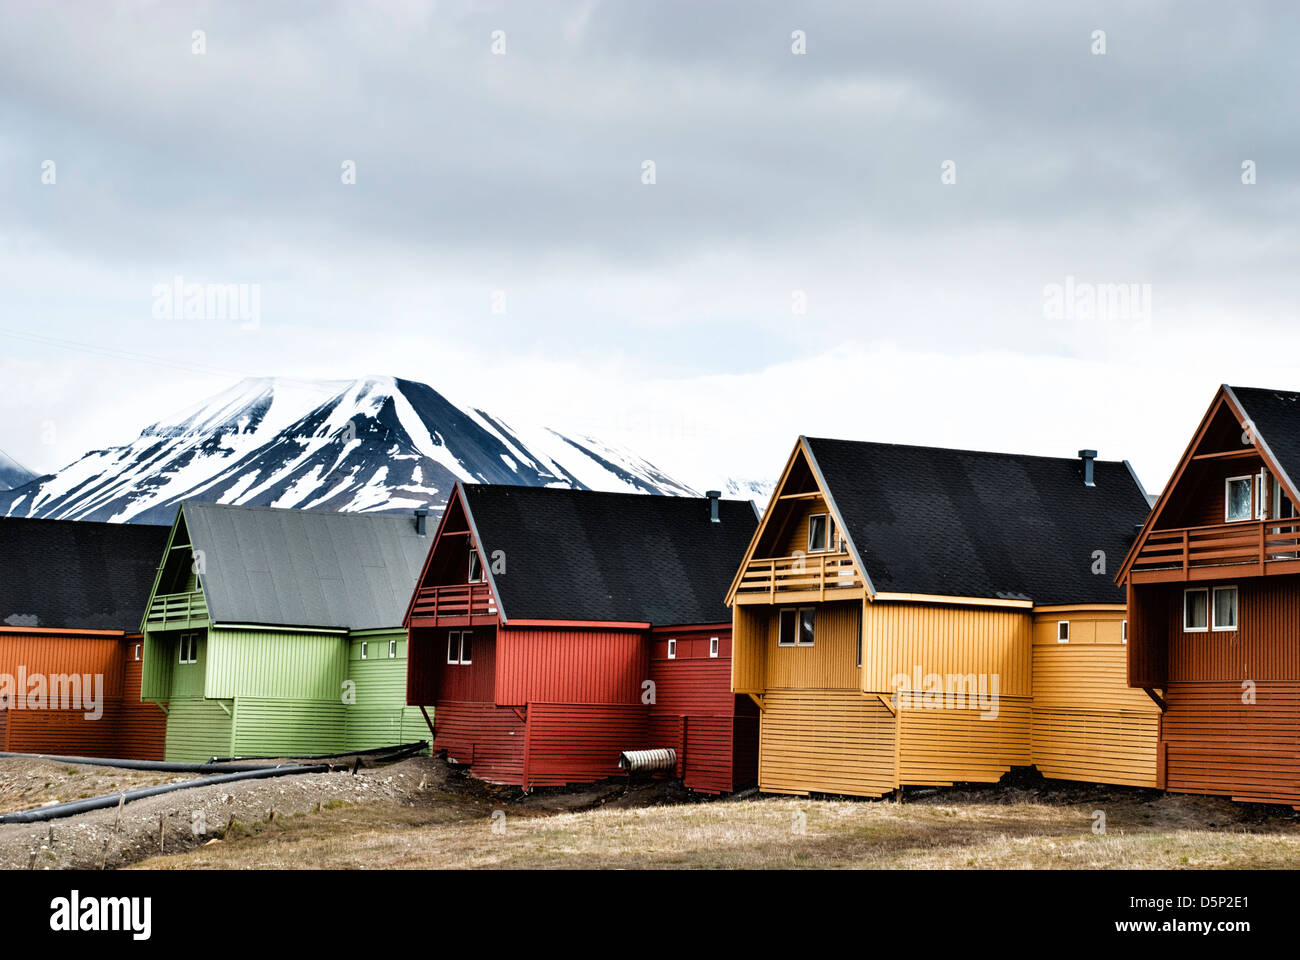 Colorful houses in the town of Longyearbyen on Spitsbergen, Svalbard Archipelago, Norway Stock Photo